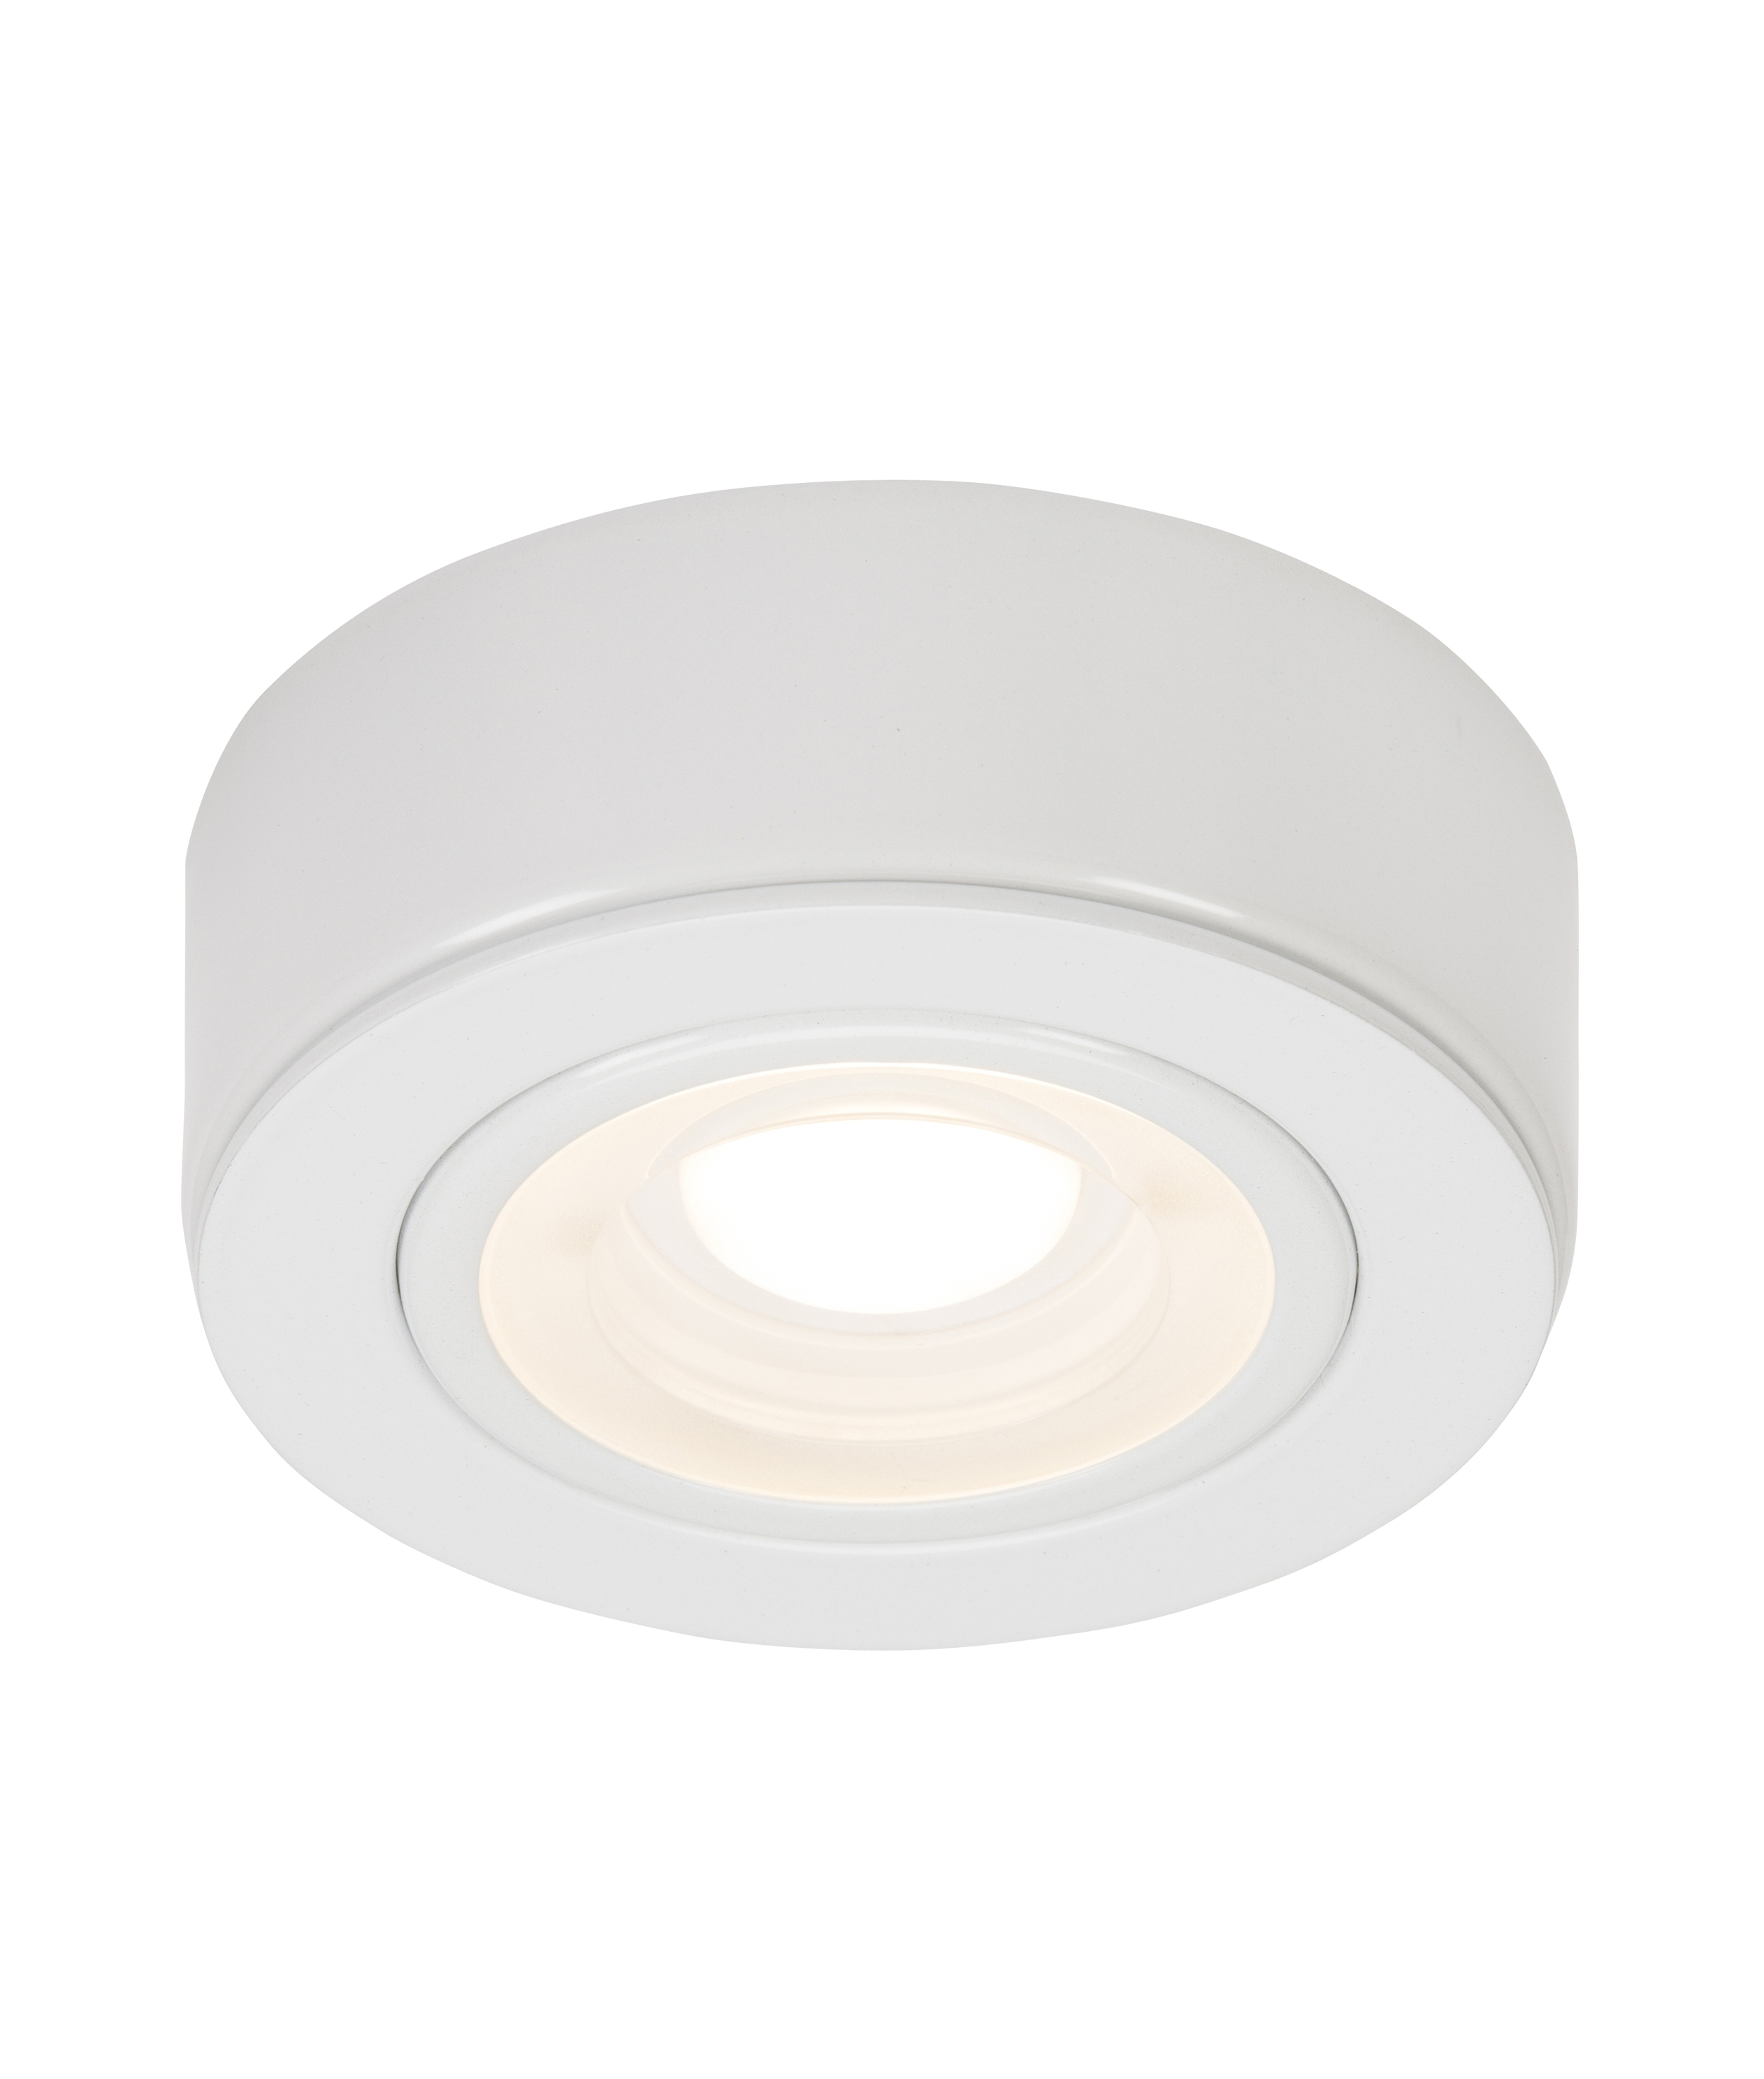 Mains Powered Round Surface Mounted Led Under Cabinet Lights No Transformer Required